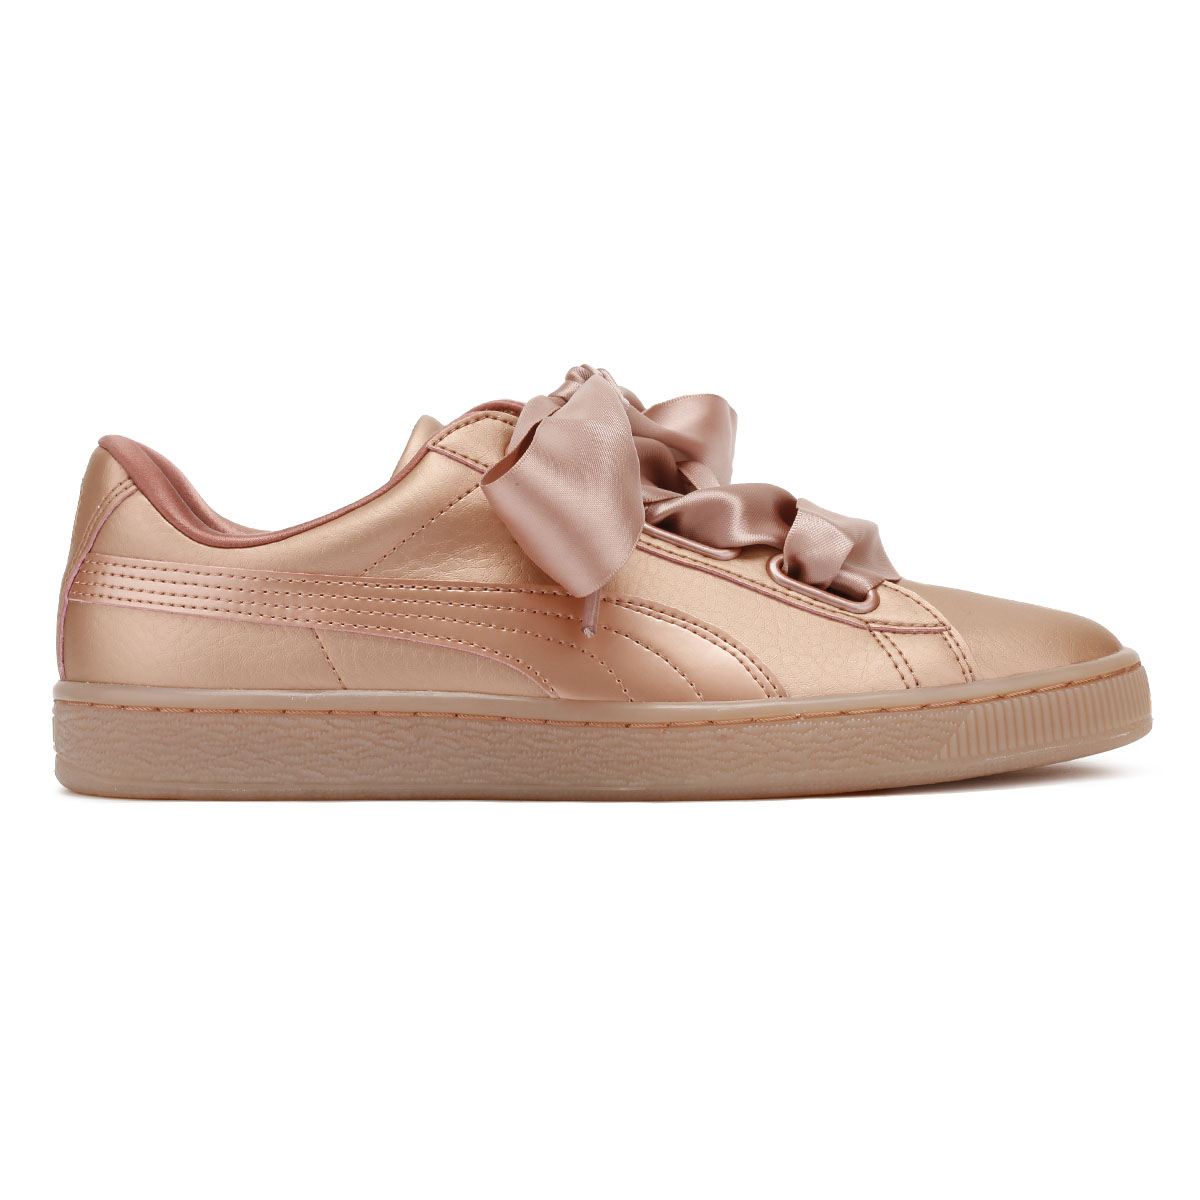 81c50f22850 PUMA Womens Copper Pink Trainers Basket Heart Patent Leather Ladies Shoes